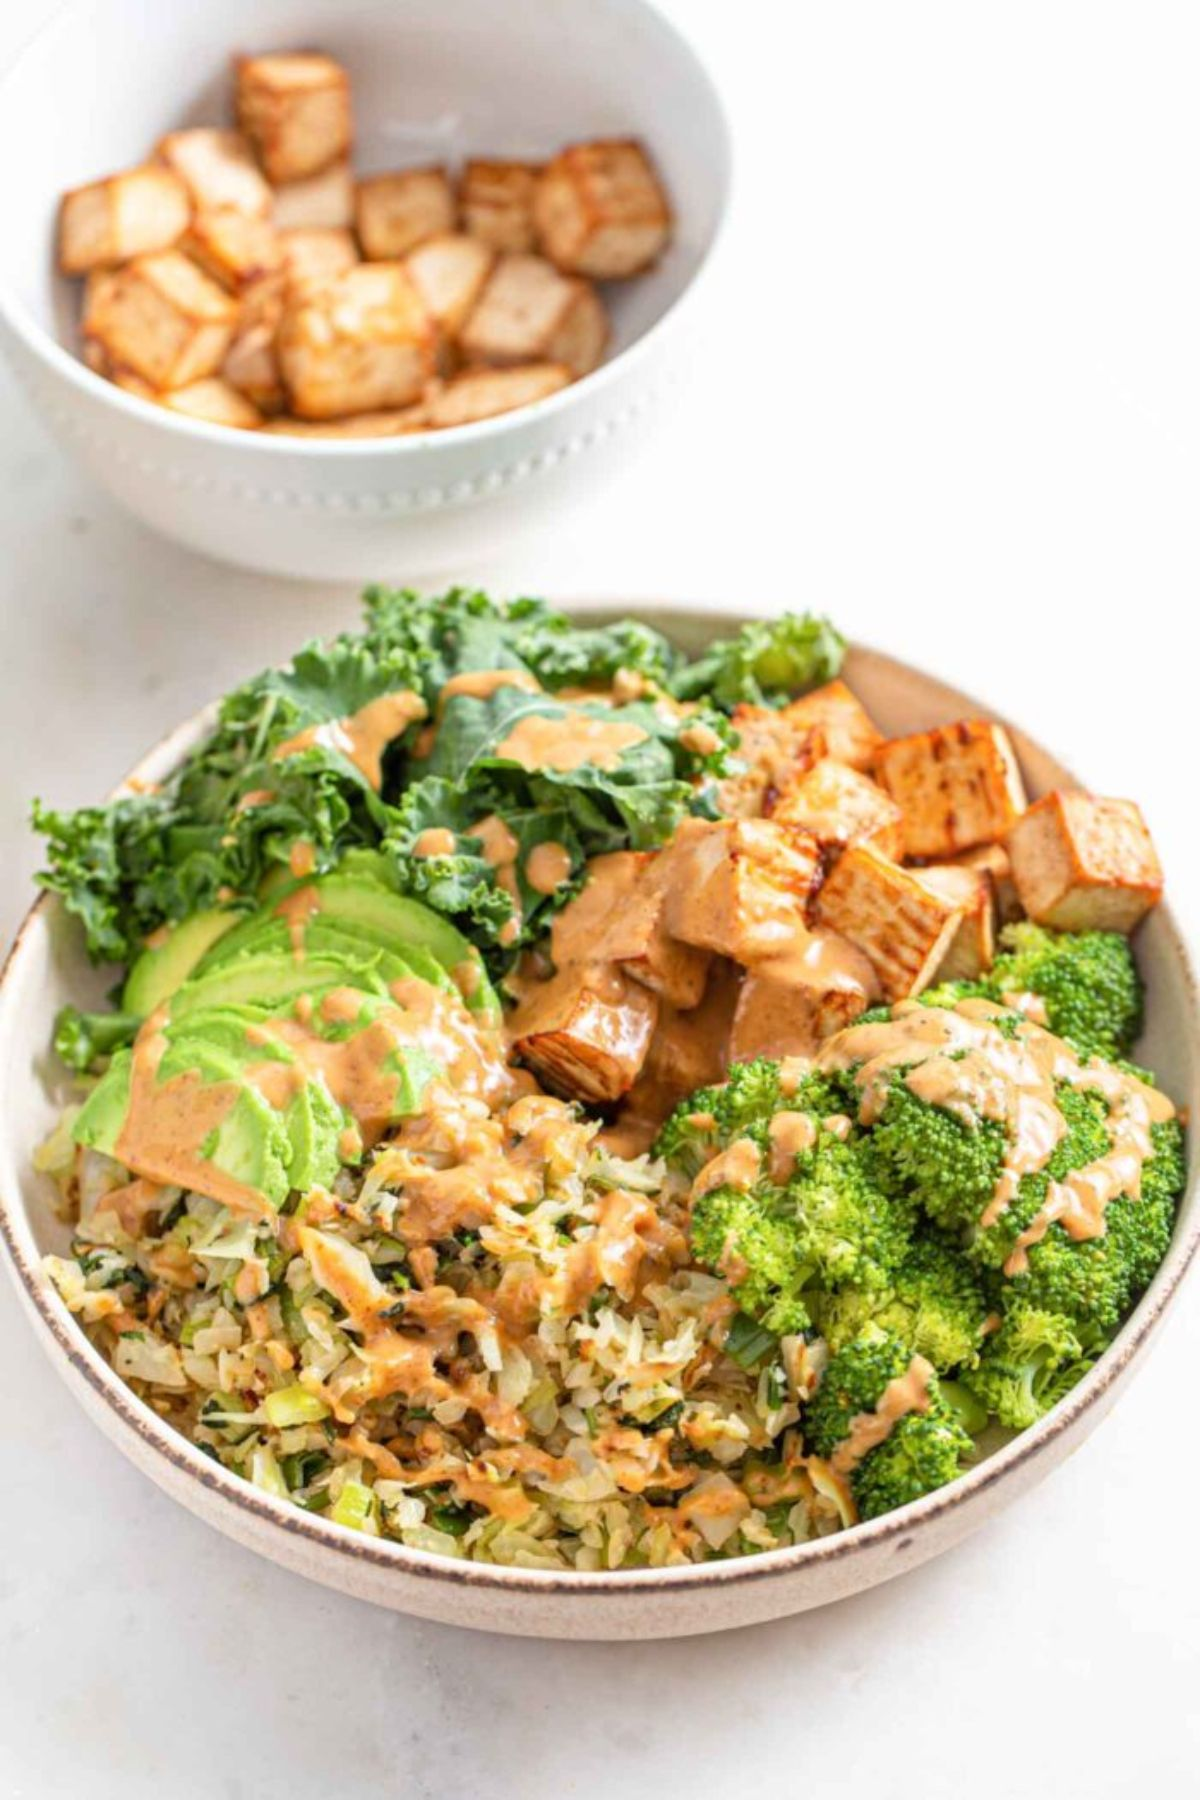 In the foreground is a white bowl with a dark stripe around the rim. Inside are sections of broccoli, fried tofu, kale, avocado and rice, all toppped with an orange sauce. Behind and blurred is a smaller white bowl filled with the tofu